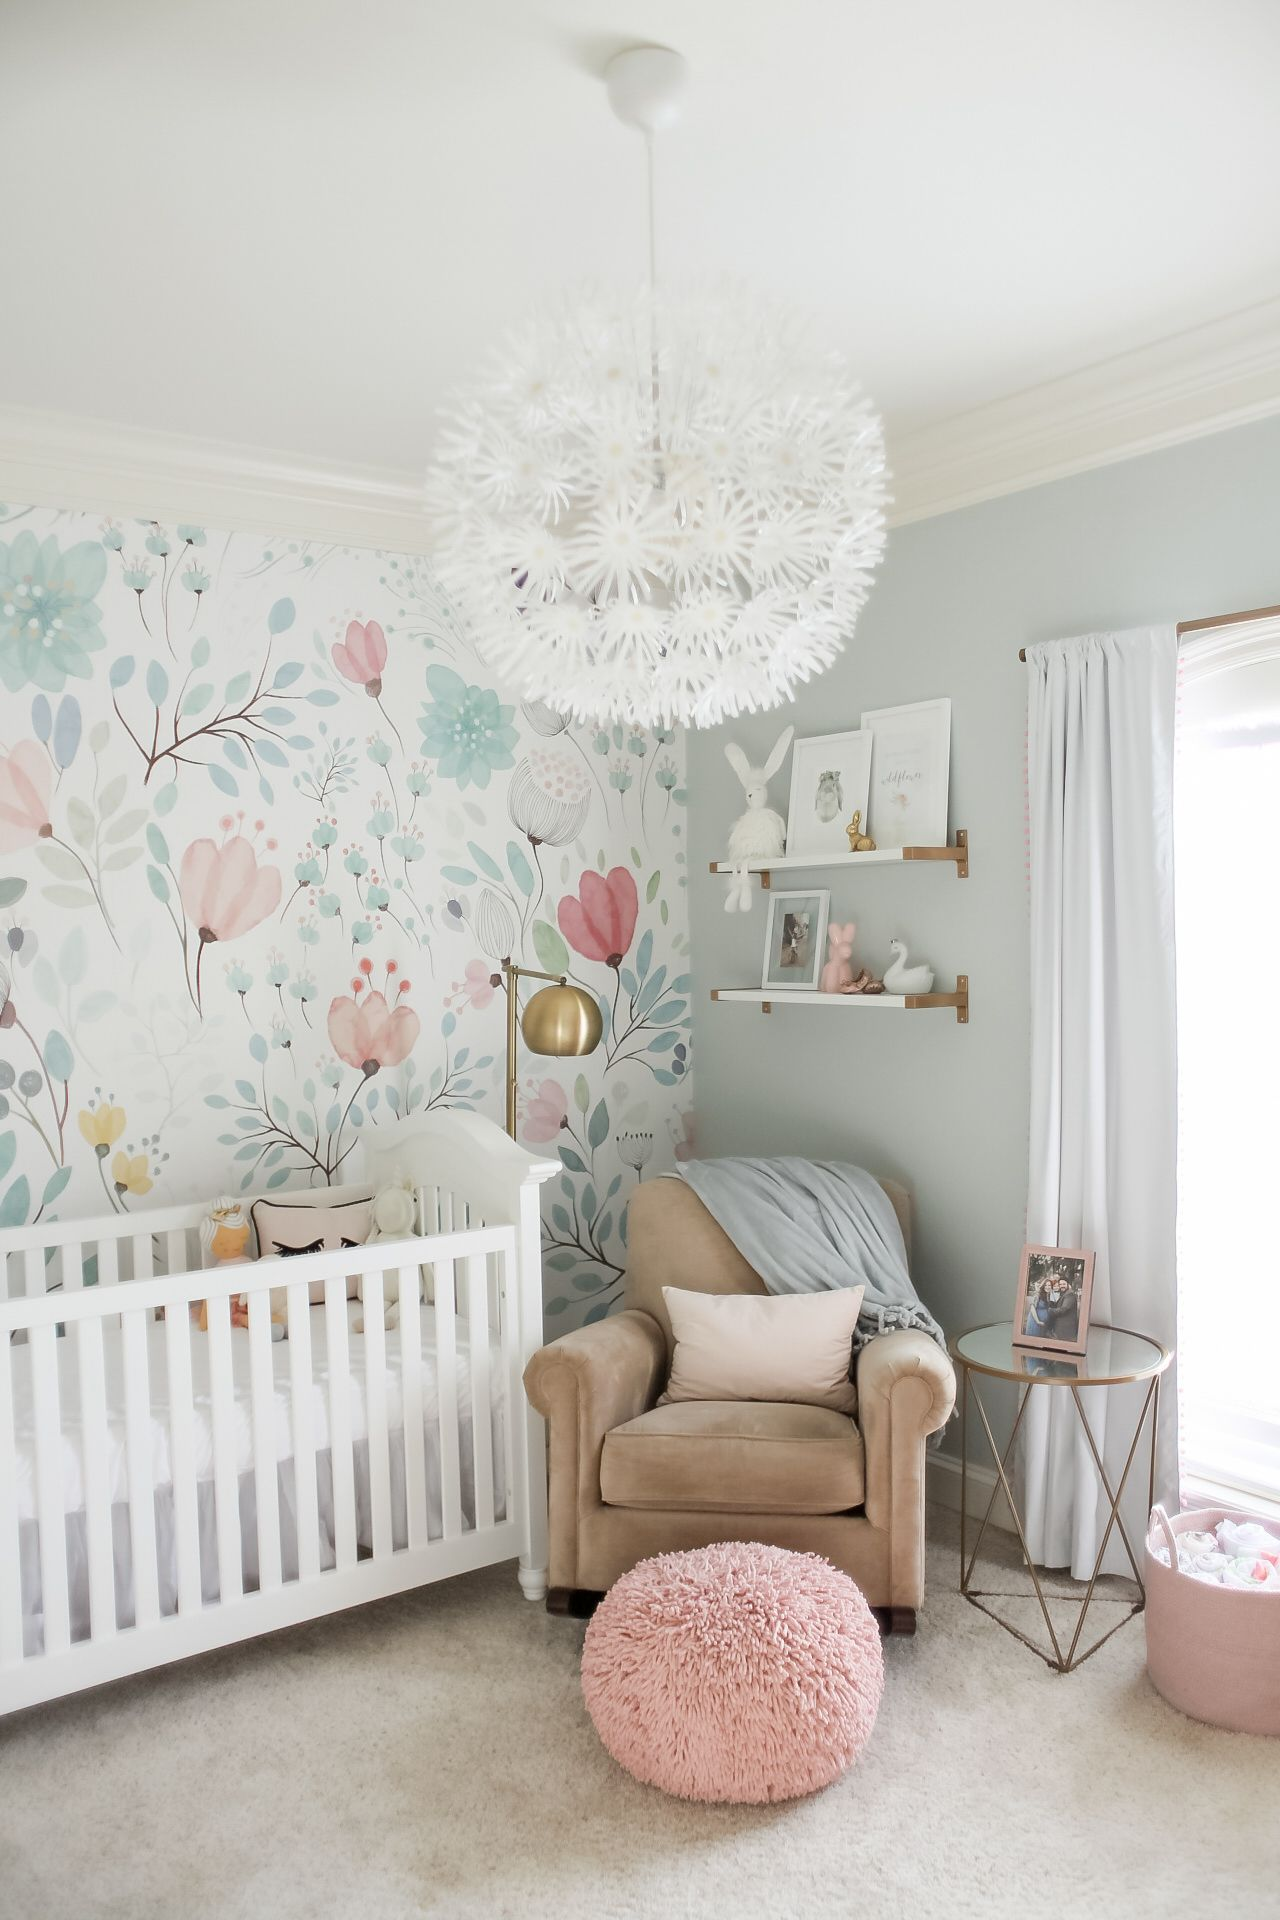 I scoured Pinterest and Instagram for inspiration and fell in love with  this wallpaper! Once